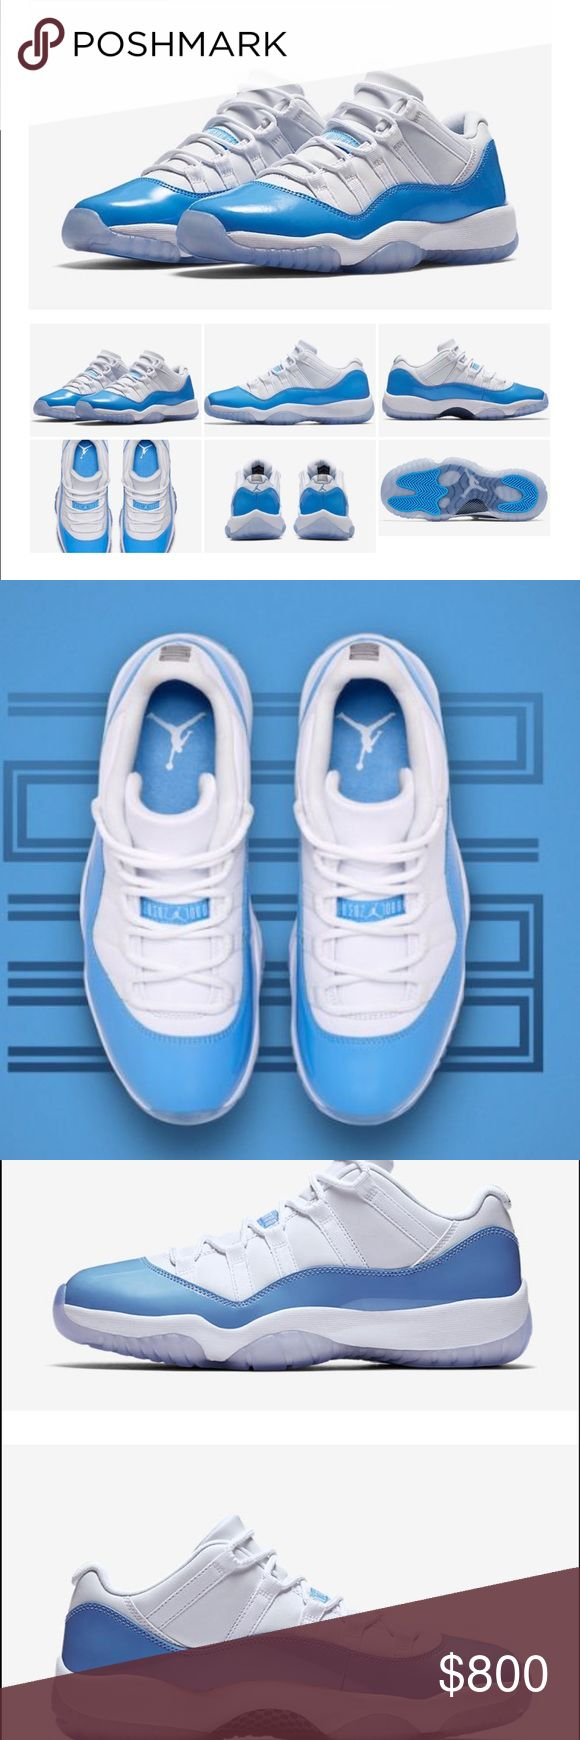 """Air Jordan 11 Low """"UNC"""" Air Jordan XI Lows North Carolina. White and University Blue. Dropping tomorrow I have the ticket for a size 13. Going to be brand new in the box obviously. Receipt will be included if you want it. These are going to be hard to get anyway else Jordan Shoes Athletic Shoes"""